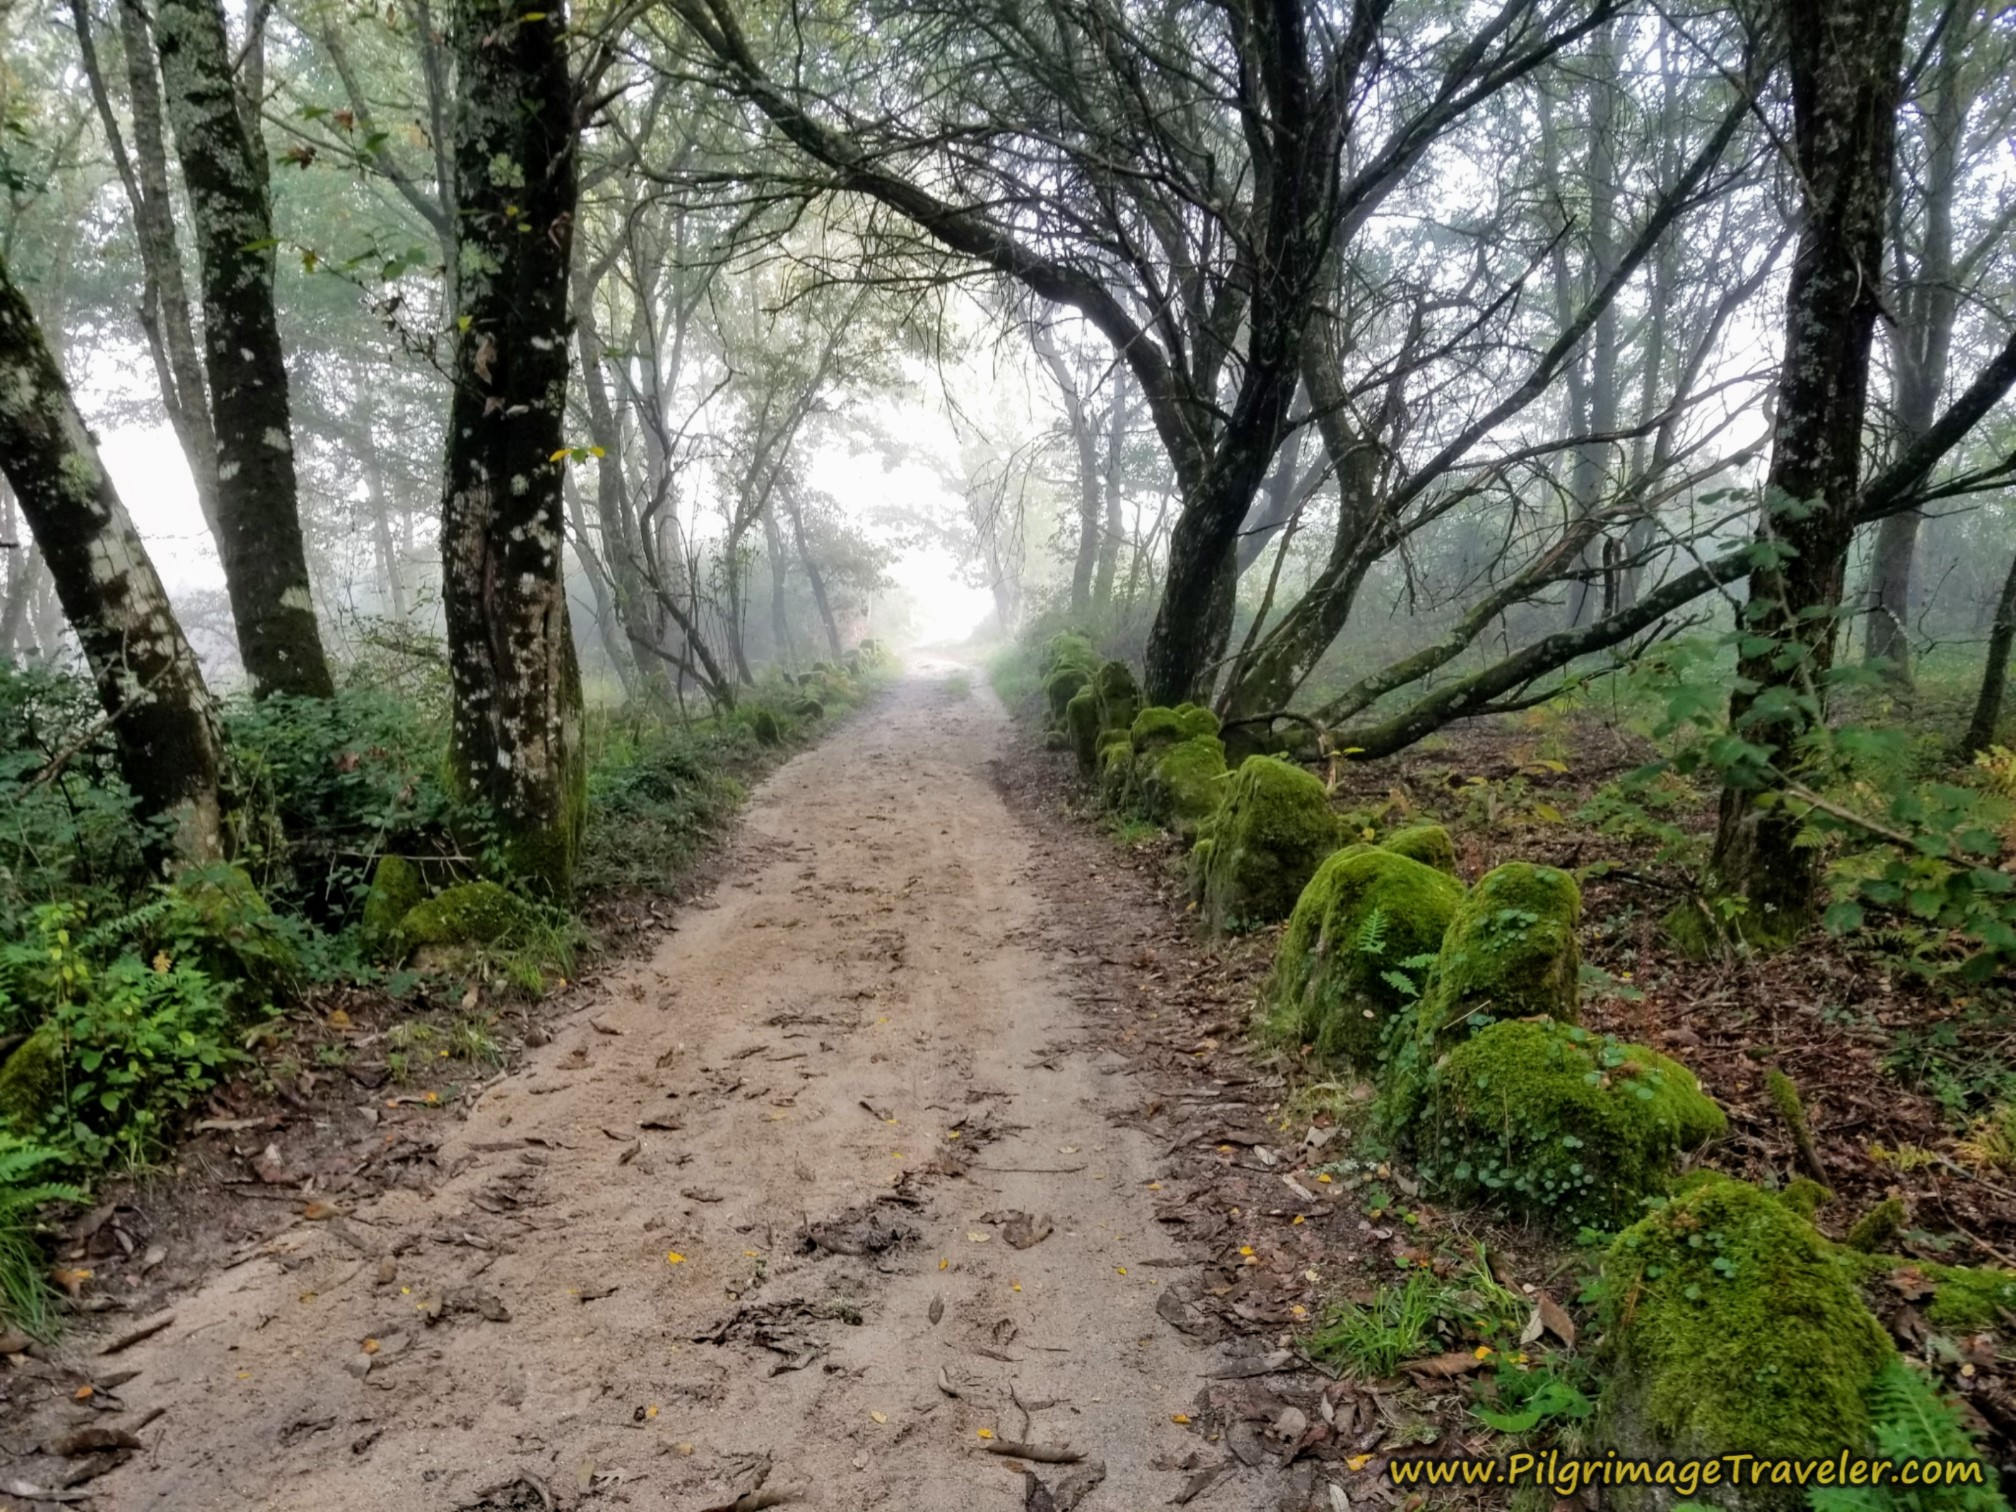 The Misty Mossy Woods, Camino Sanabrés, Ourense to Cea